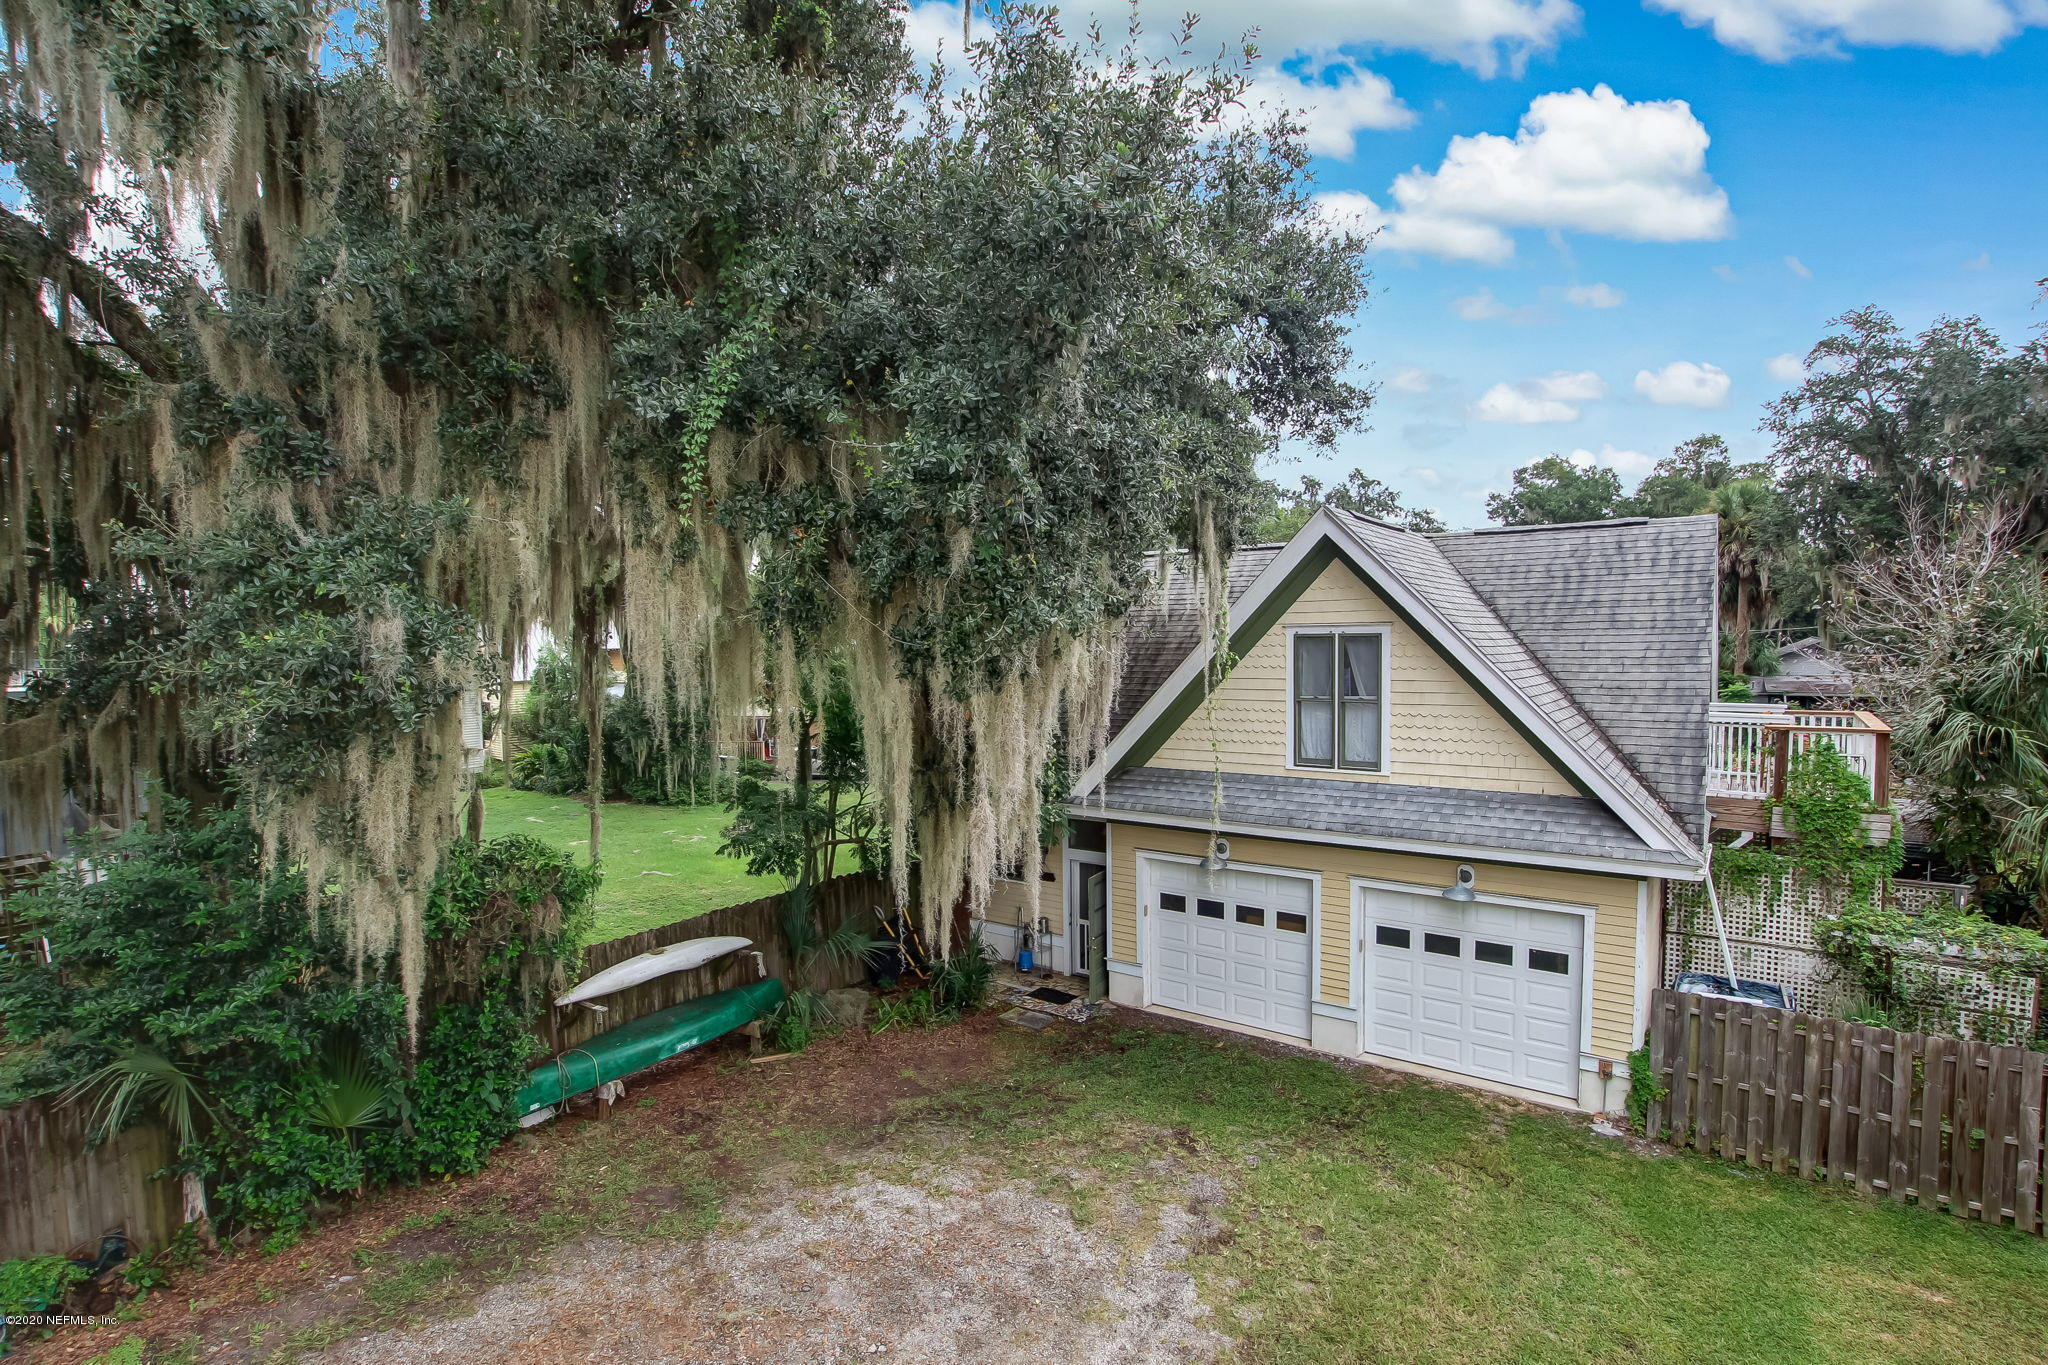 116 Kirkland, PALATKA, FLORIDA 32177, 5 Bedrooms Bedrooms, ,3 BathroomsBathrooms,Investment / MultiFamily,For sale,Kirkland,1077258